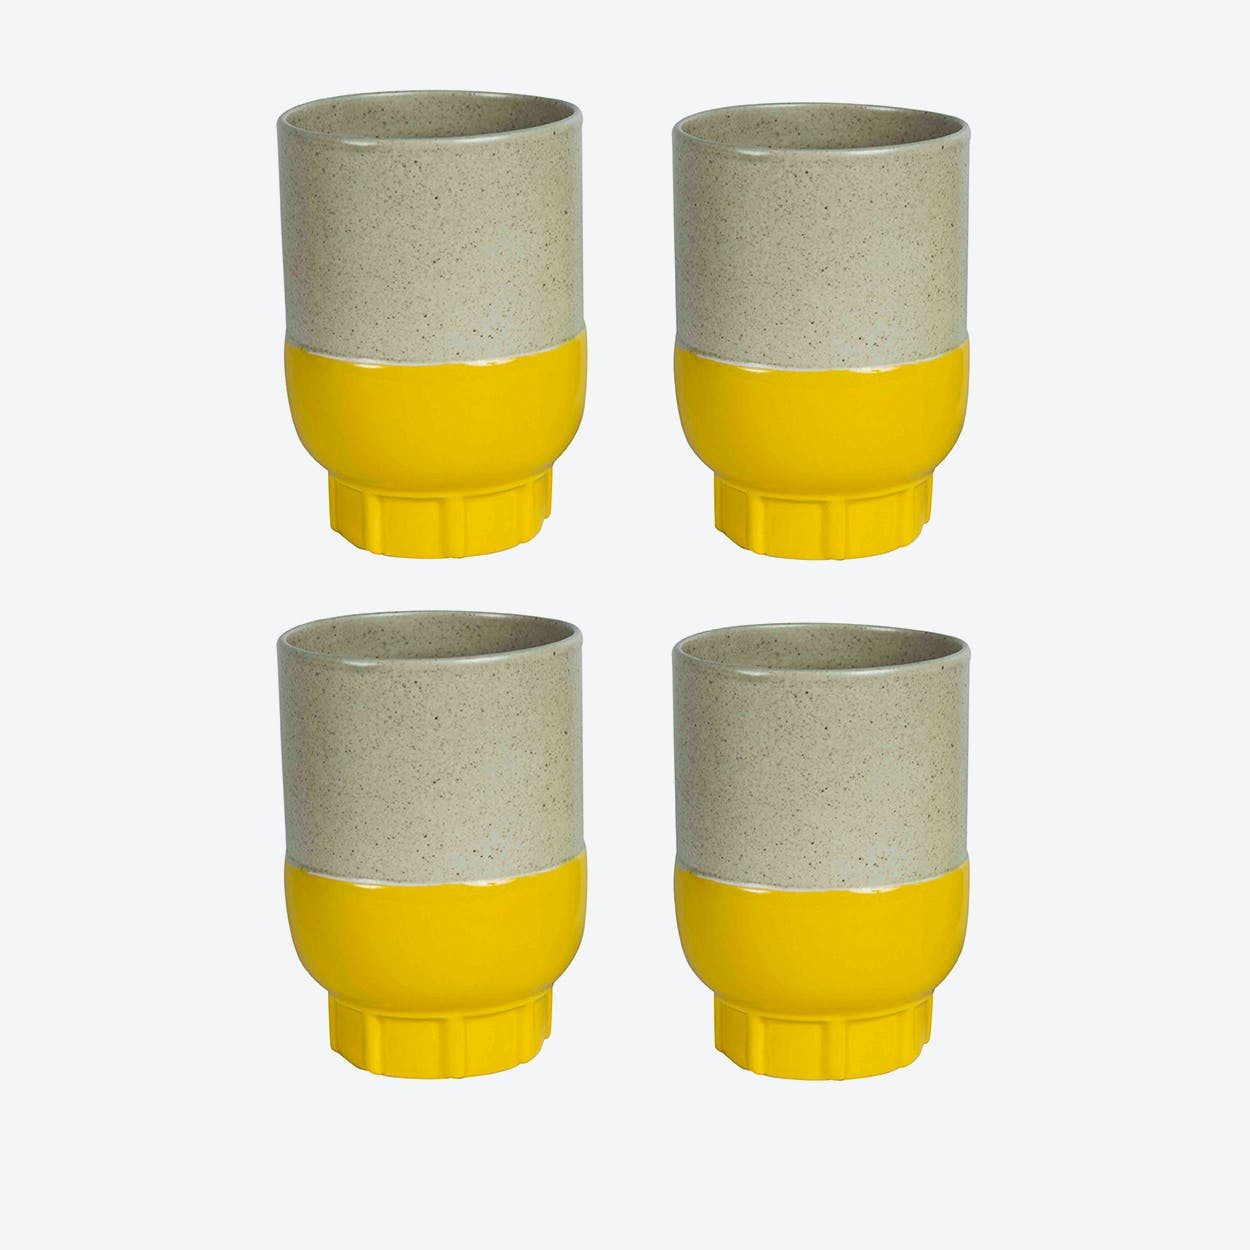 Two Colour Cups - Yellow (set of 4 pcs)